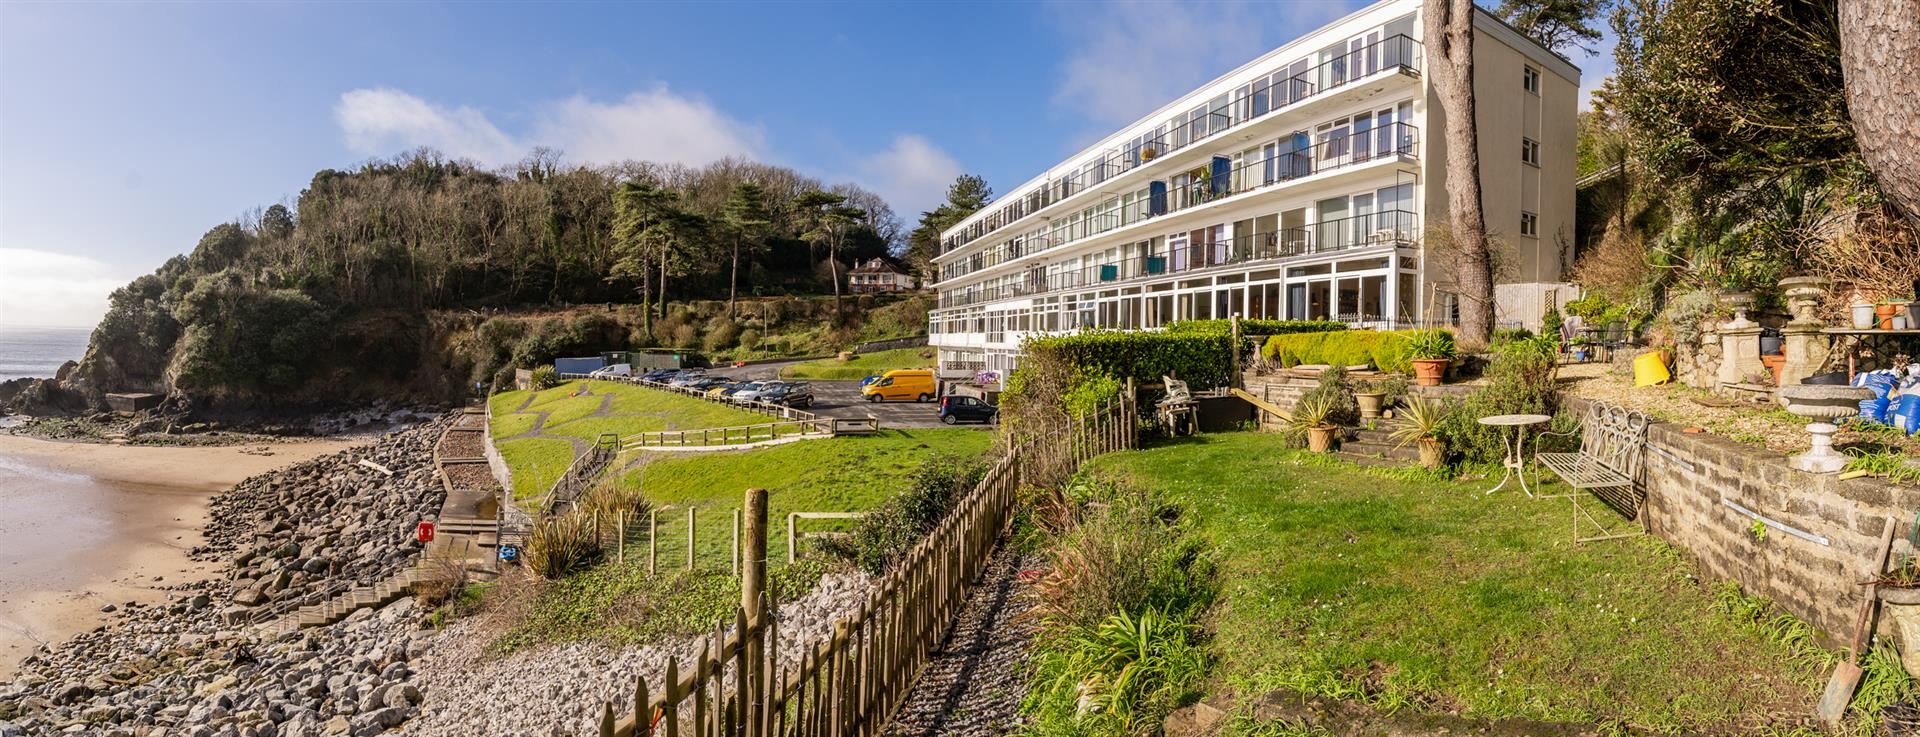 10a & 9a Redcliffe Apartments, Caswell, Swansea, SA3 3BT